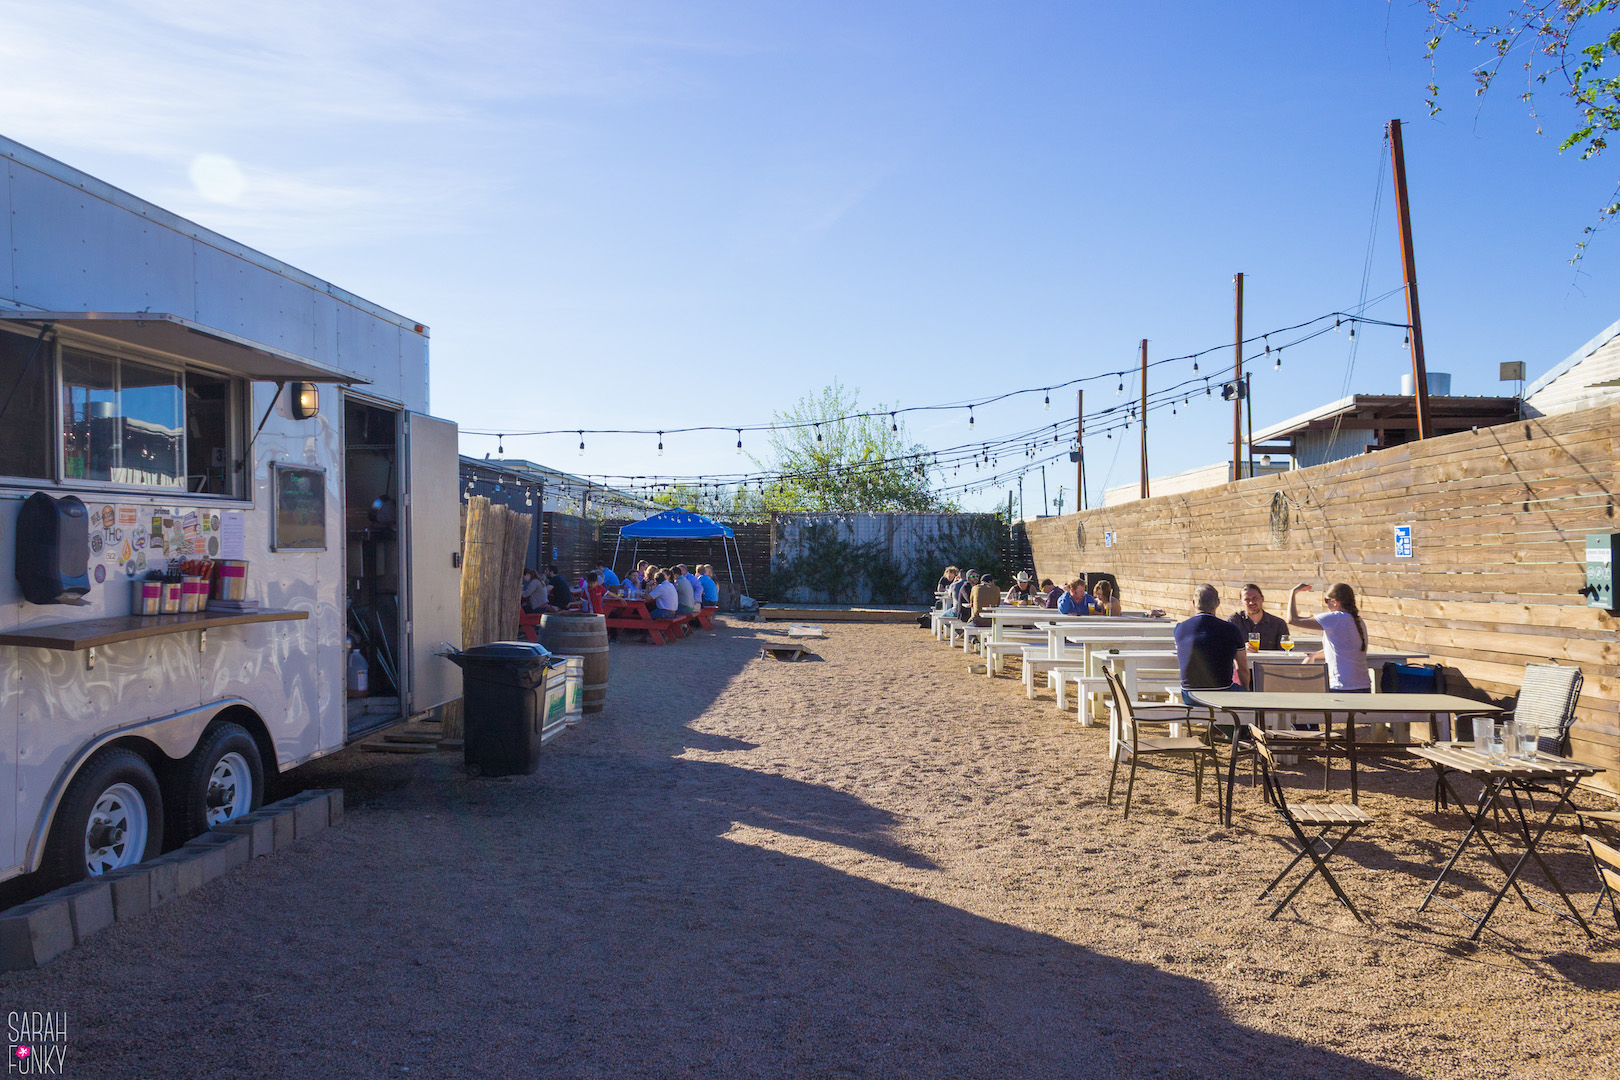 The outdoor space at St. Elmo Brewing Co. has a food truck and several outdoor games (not seen in photo)